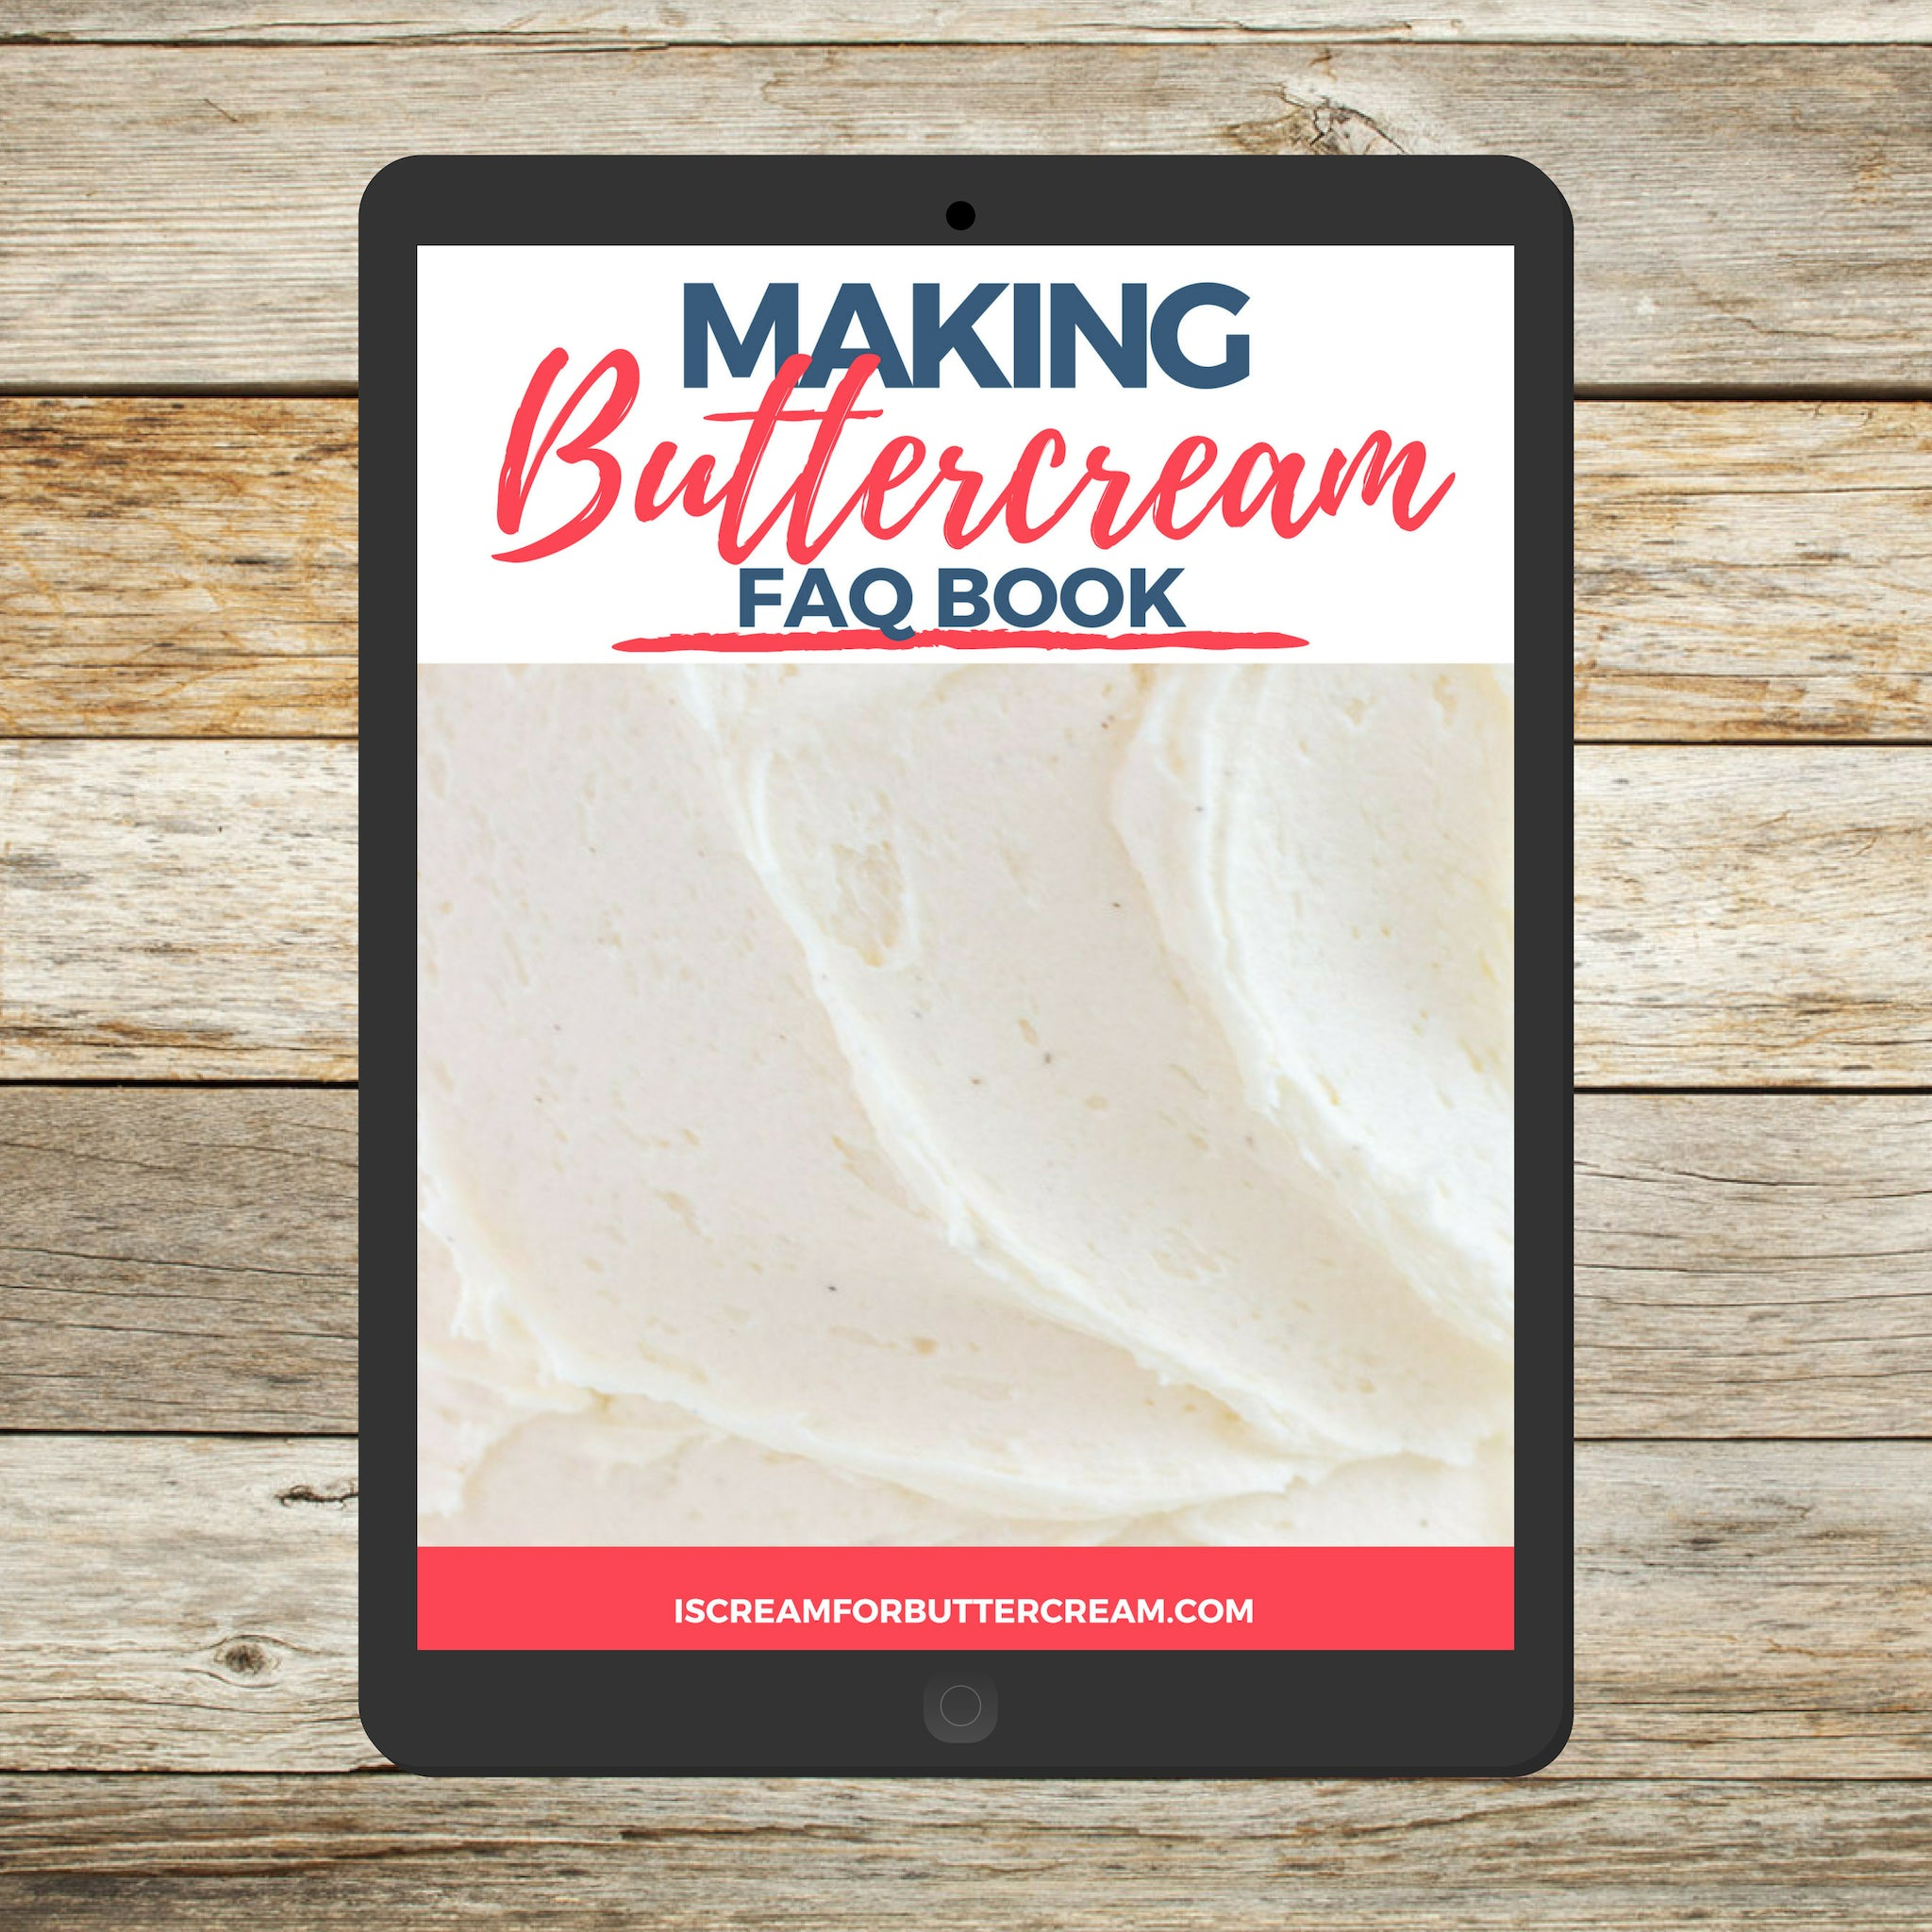 Making Buttercream FAQ book cover page